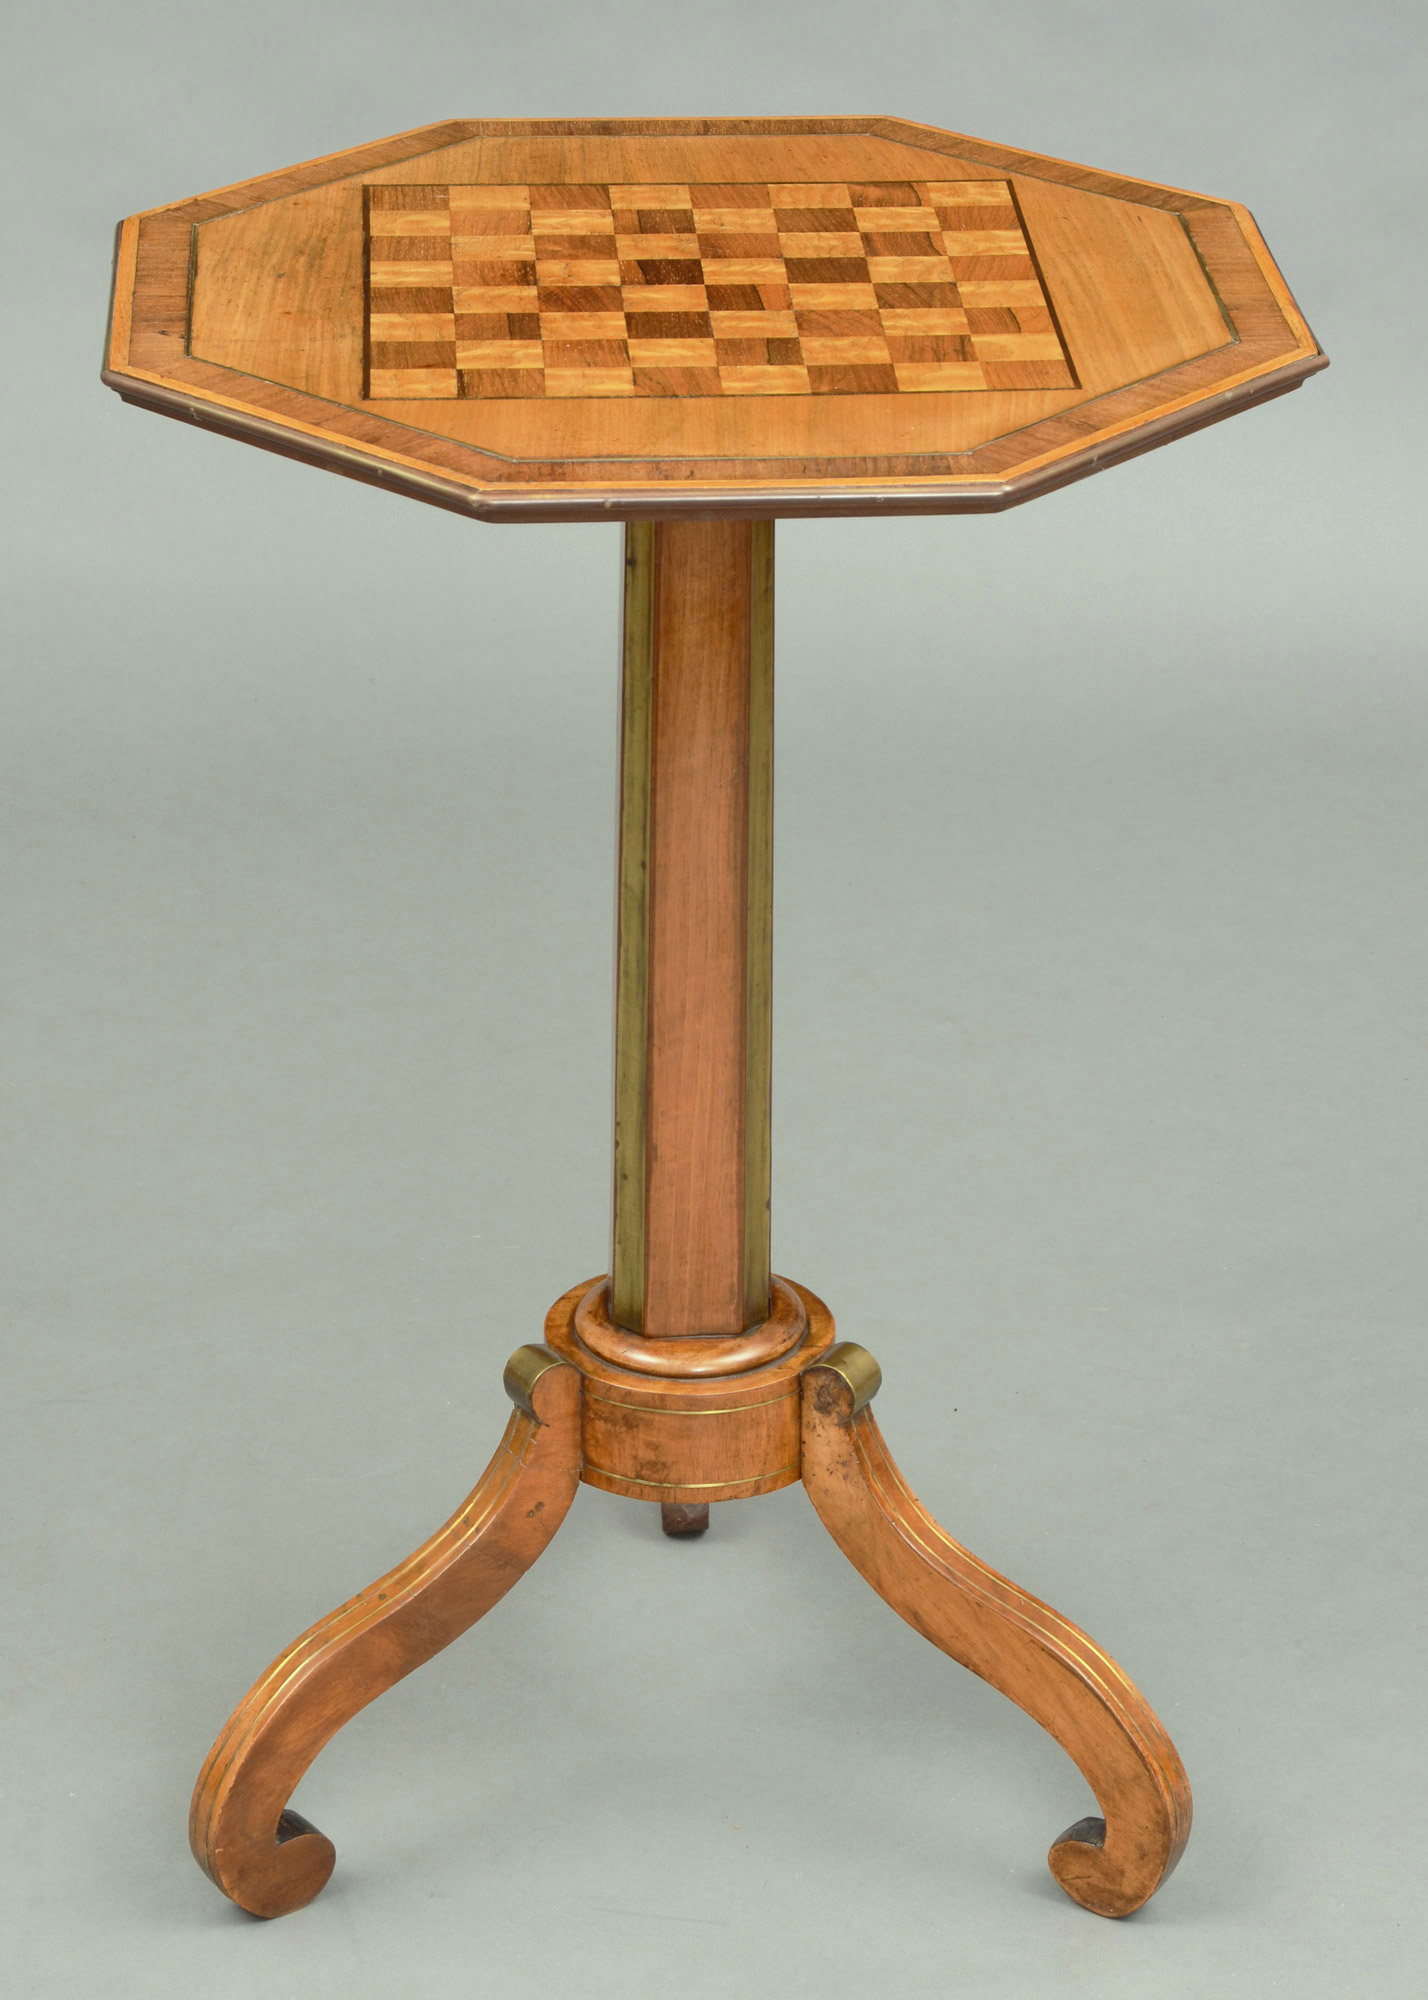 ... Antique English Regency Brass Inlaid Pedestal Games Table ...